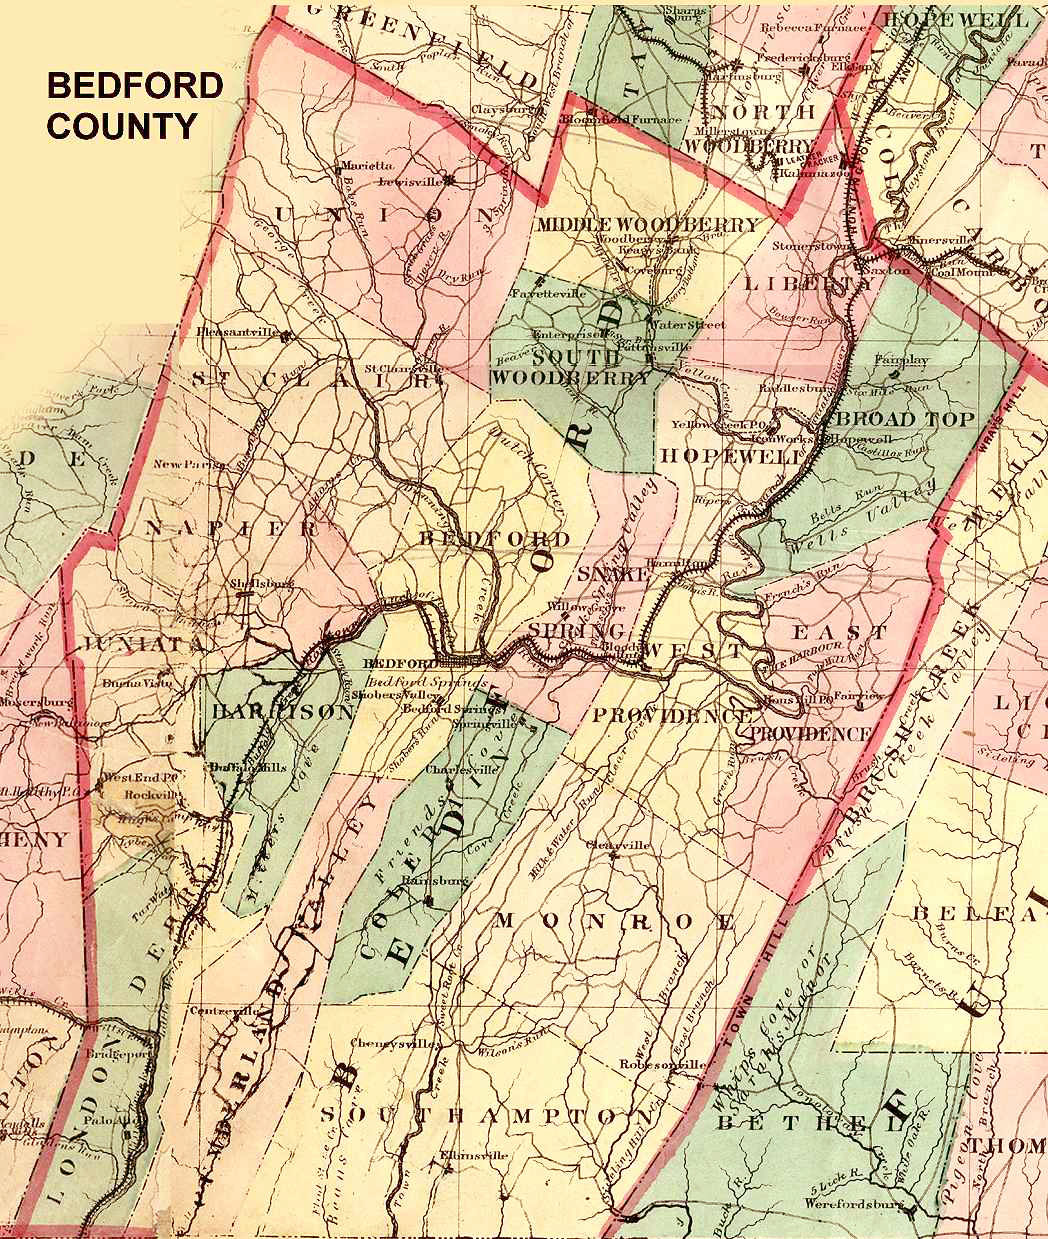 Ancestor Tracks: Bedford County Landowner Map, 1861